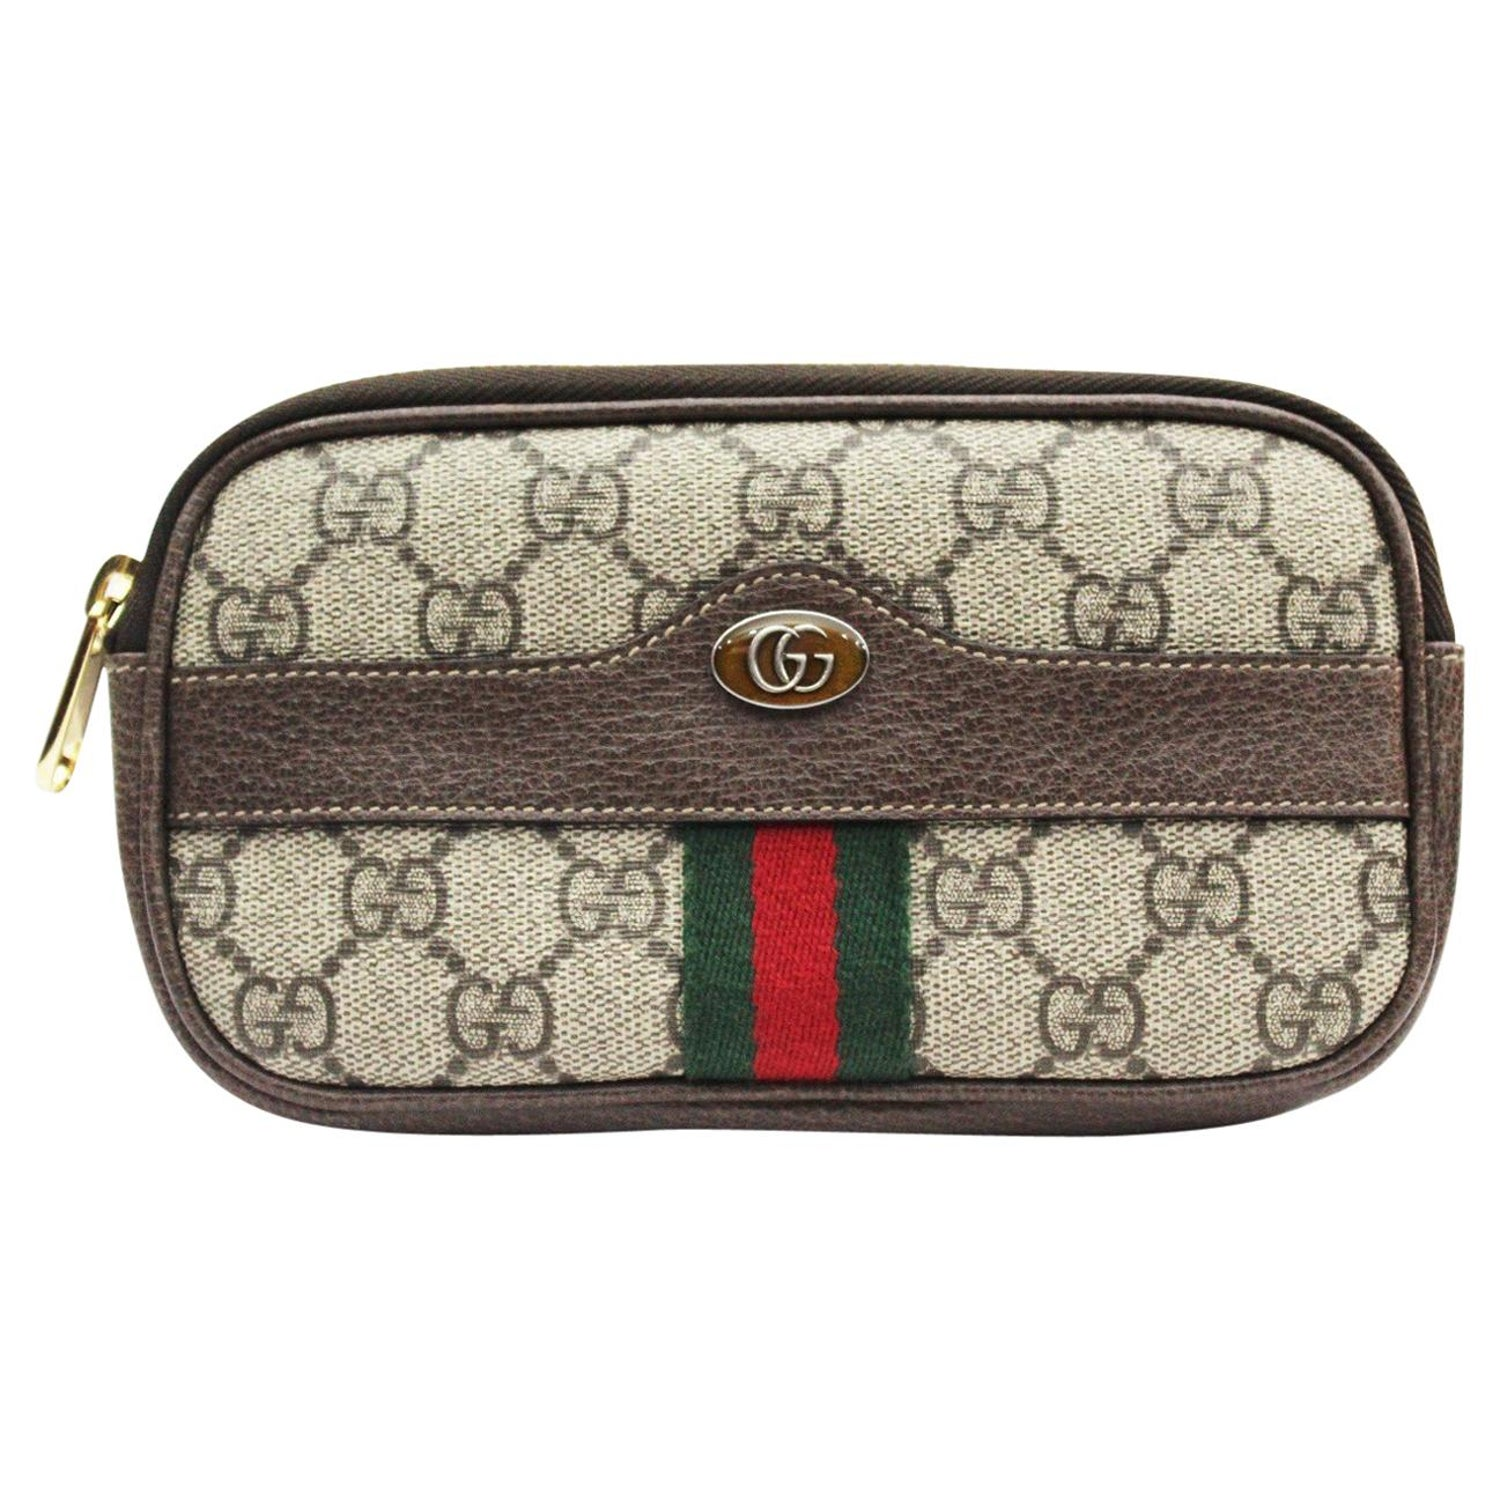 3b87b4b30 Ophidia GG Supreme small belt bag at 1stdibs